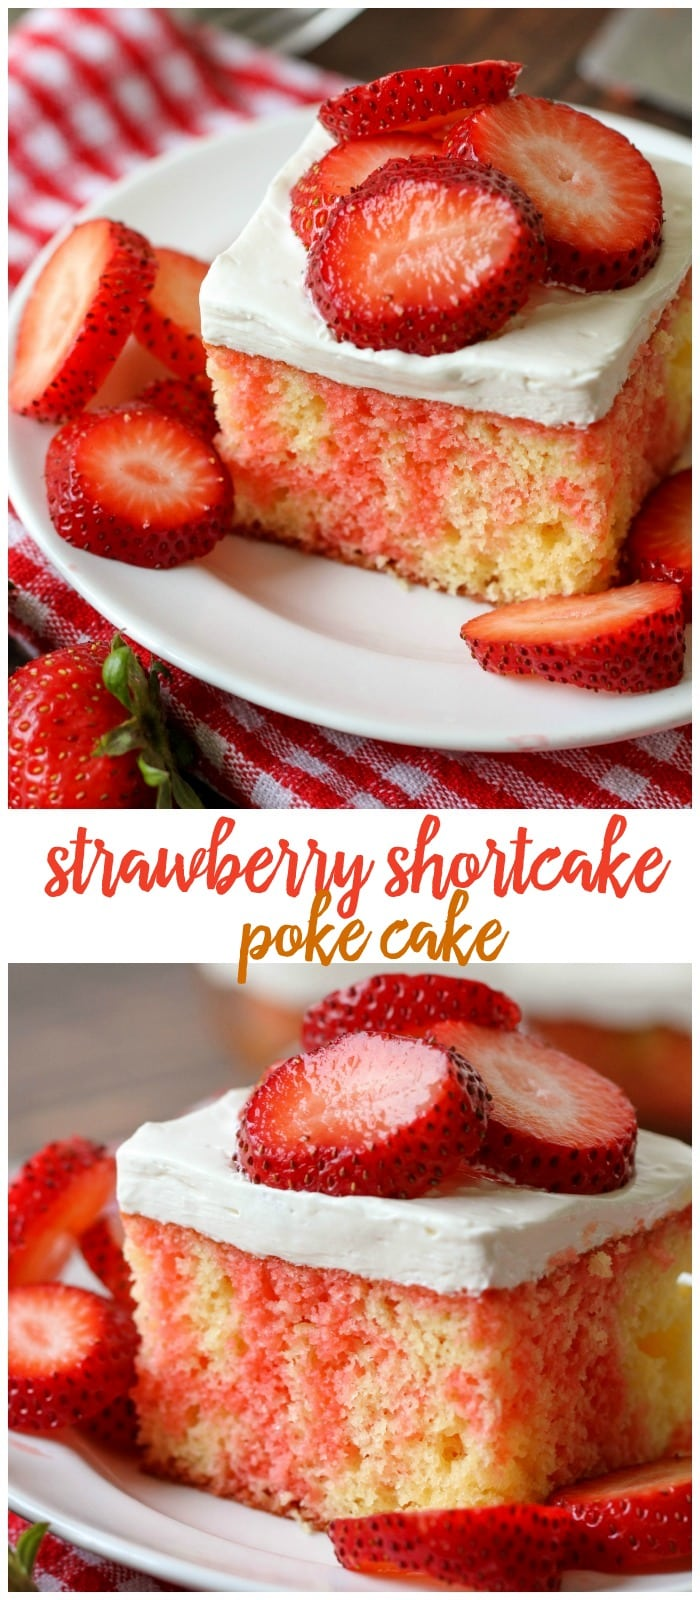 Strawberry Punch Bowl Cake Calories